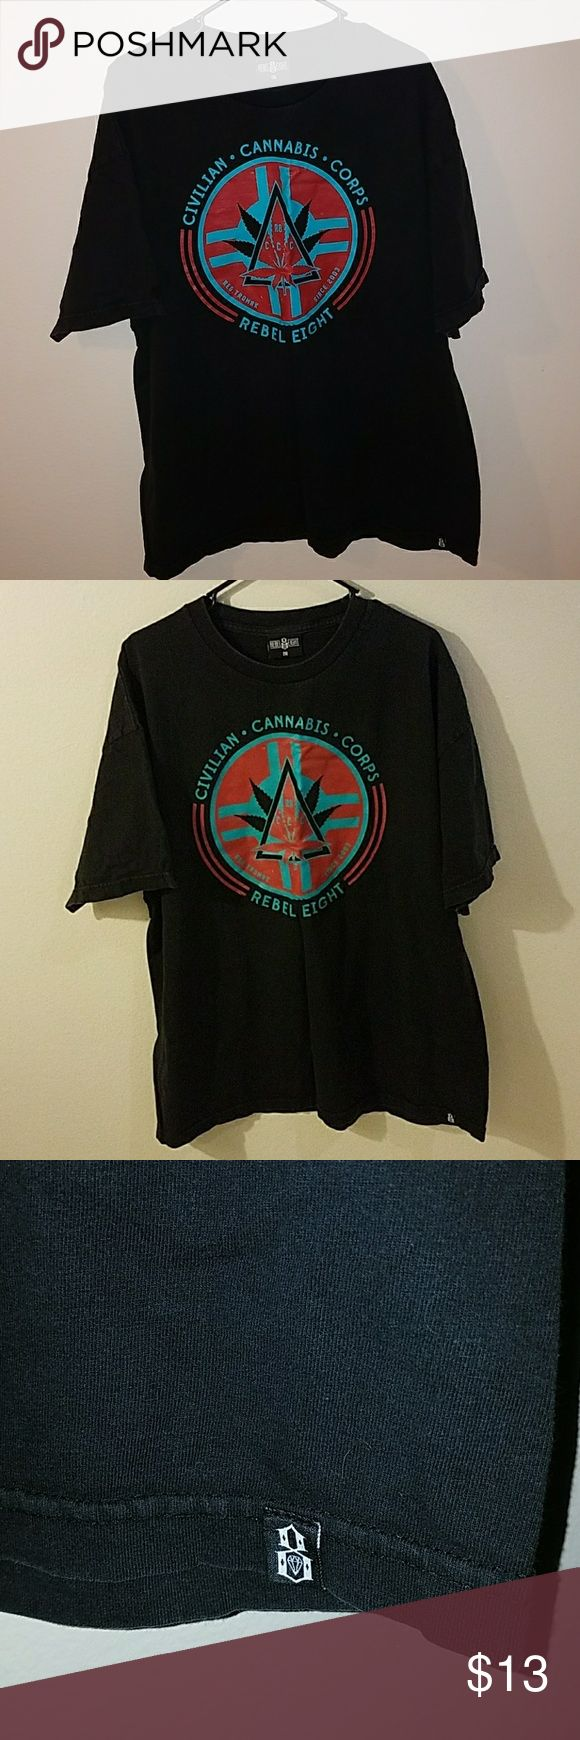 Rebel 8 men's t-shirt Rebel 8 men's shirt. Size XXL. Faded but still in awesome condition. rebel 8 Shirts